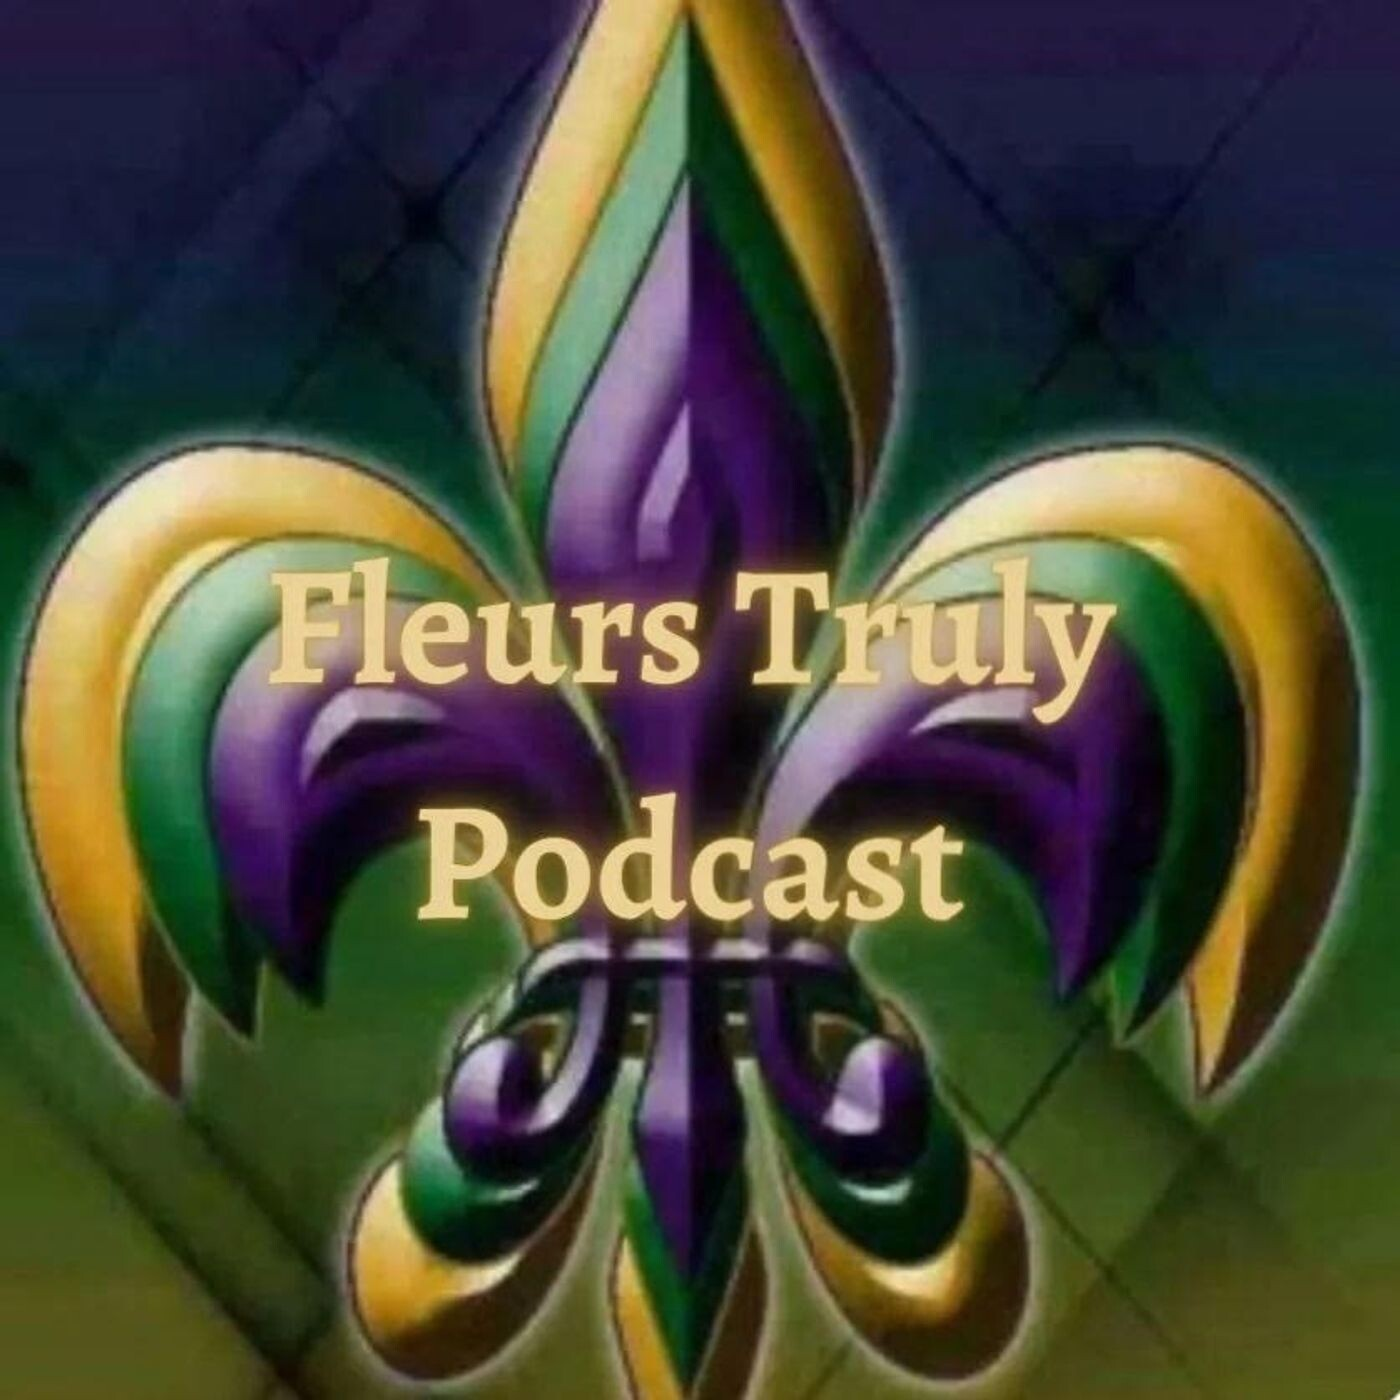 Jeff's New Twitter Name is Released!, Virtual sports, concerts & tv, NOLA acts of kindness